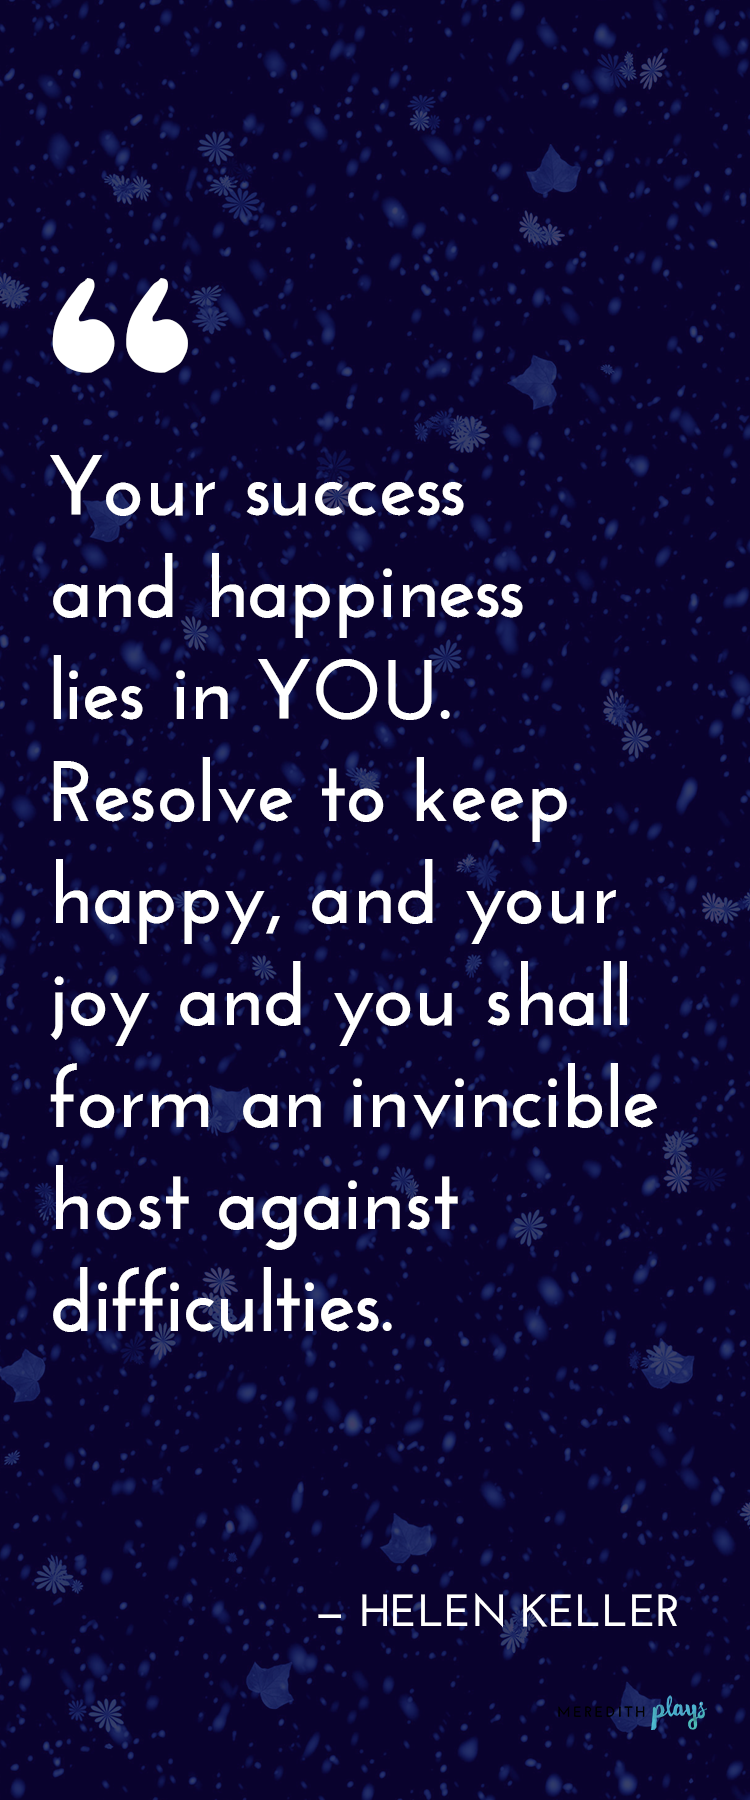 New Years Eve Quotes Helen Keller Sayings Inspirational Quotes Spiritual Quotes Quotes To Live By Quotations